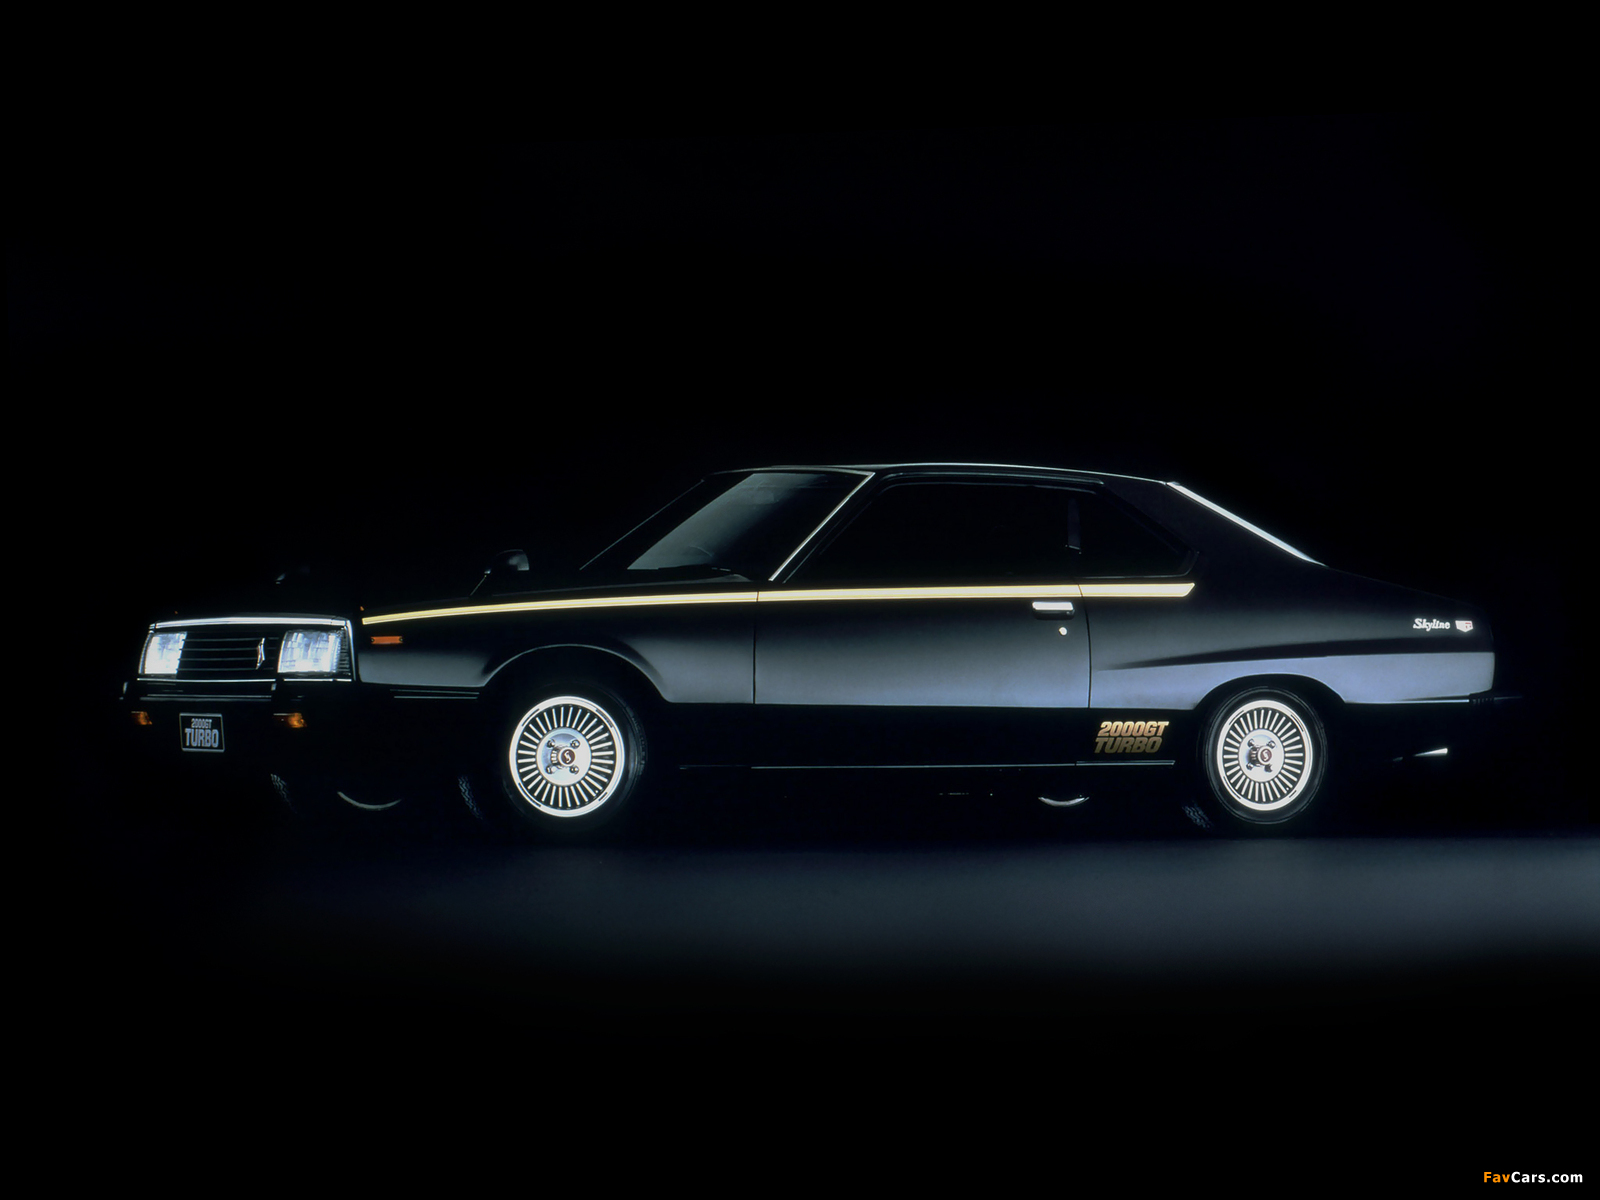 Nissan Skyline 2000GT Turbo Coupe (KHGC211) 1980–81 wallpapers (1600 x 1200)